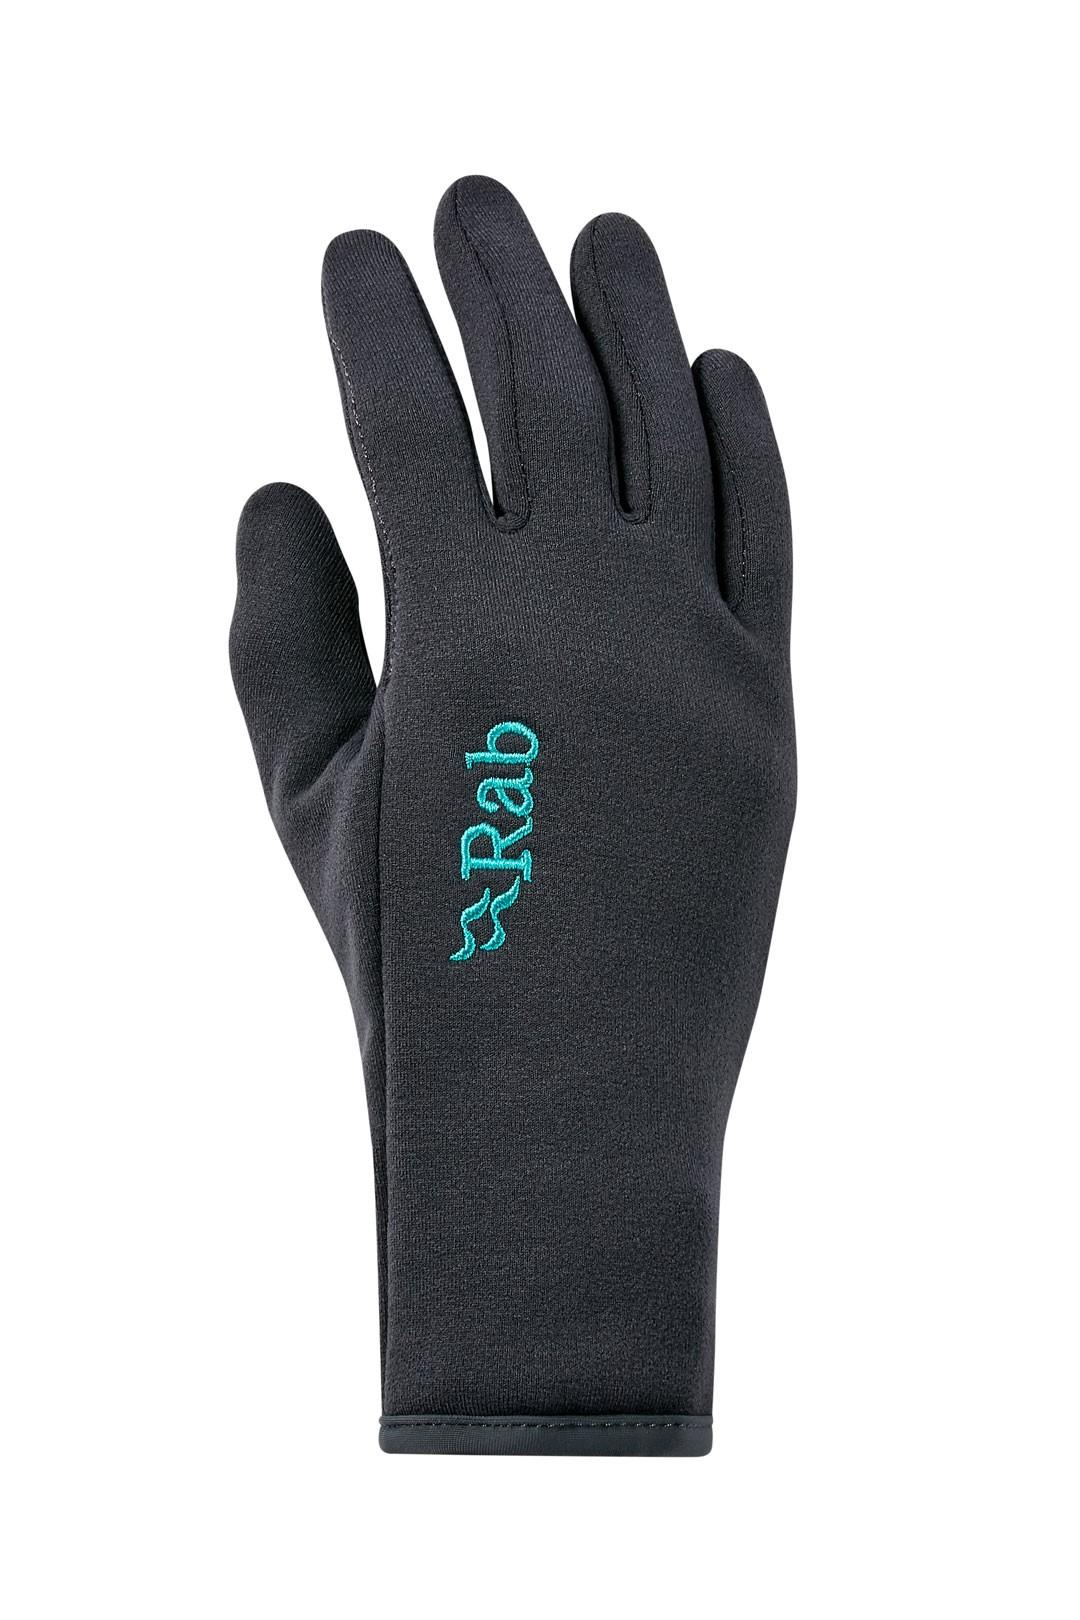 Rab Power Stretch Contact Glove Womens - Beluga